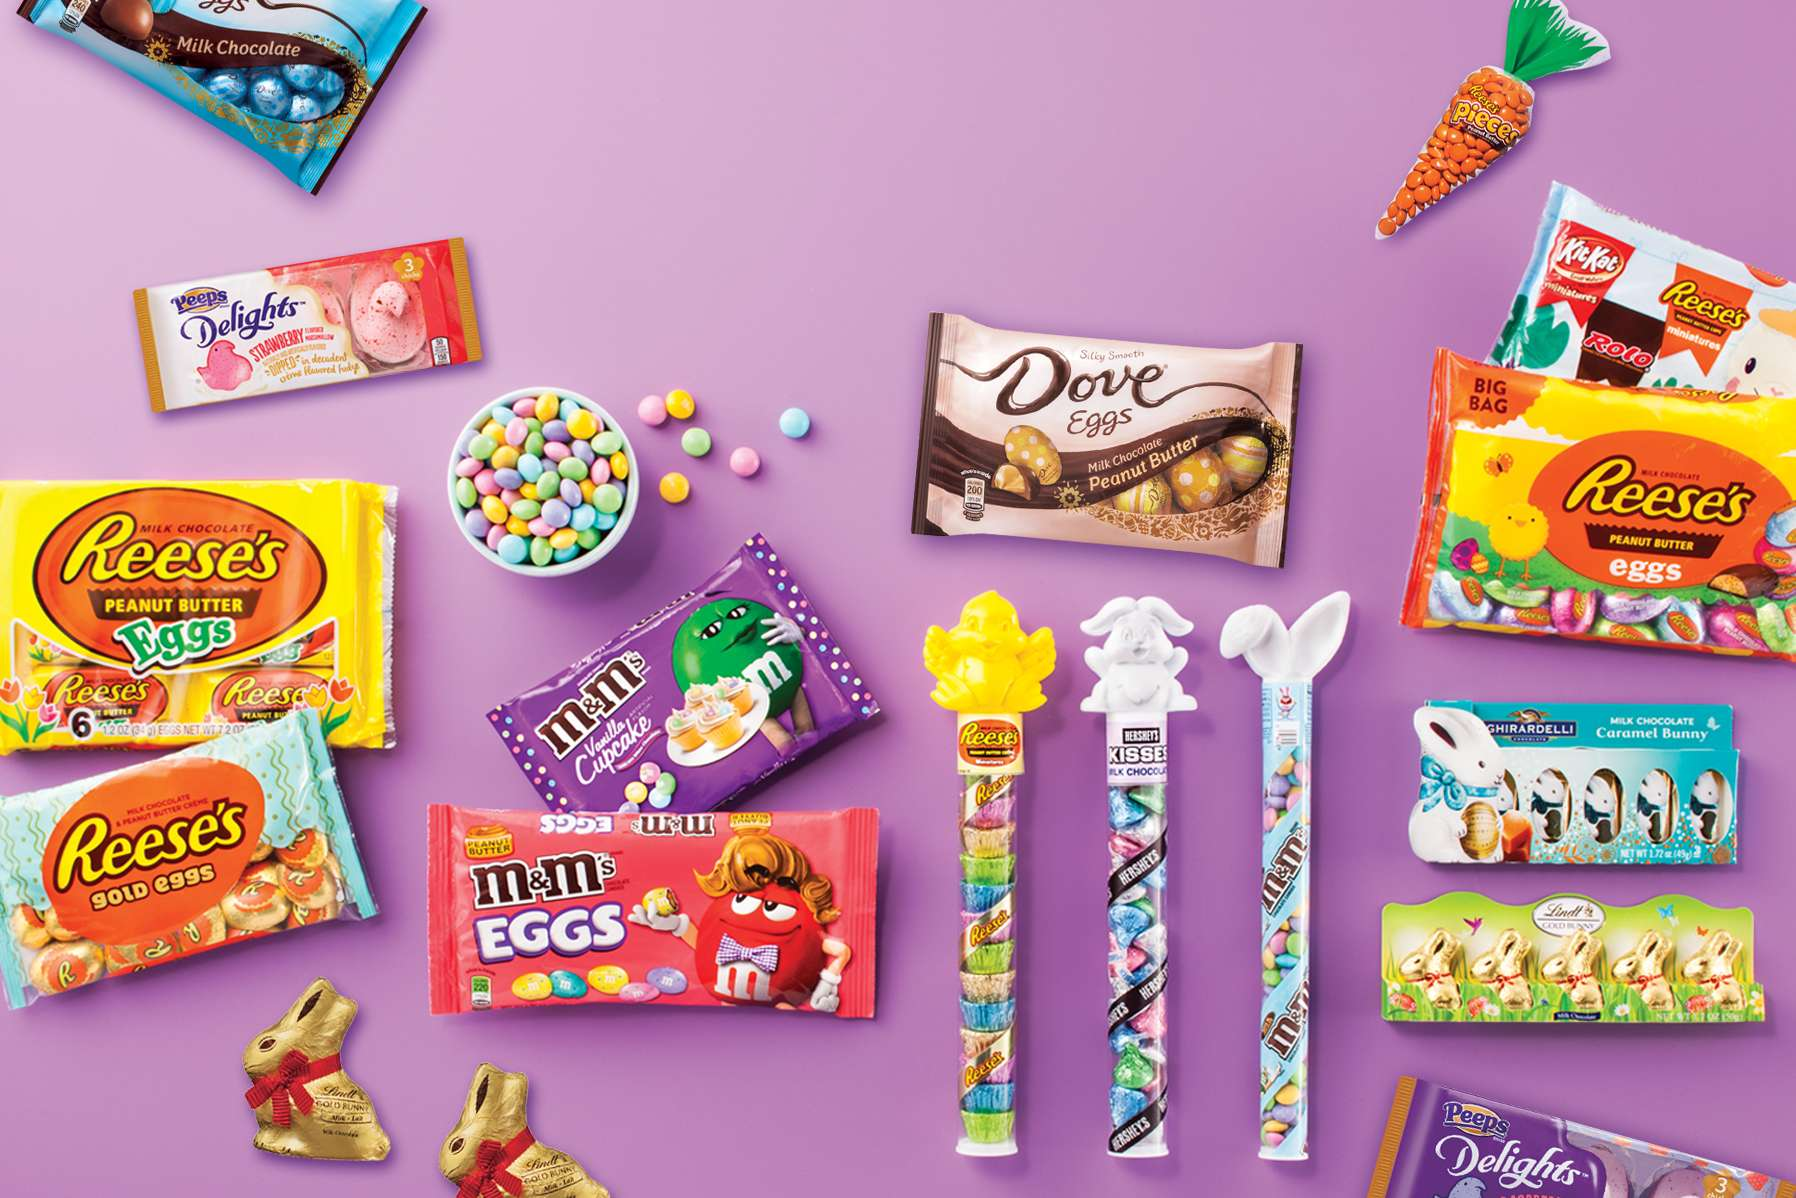 The Top 5 Easter Candies in America